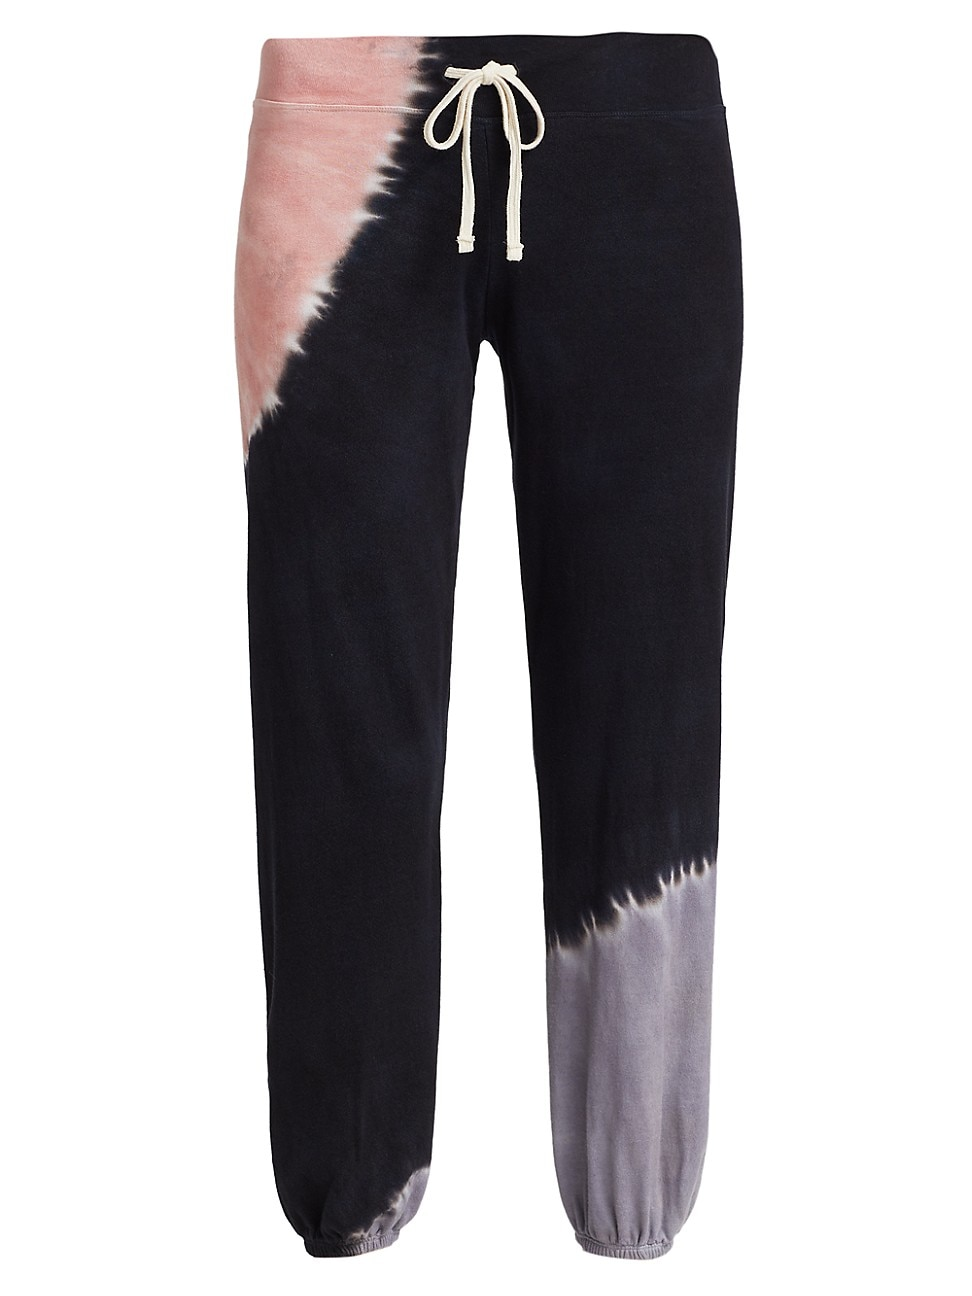 Sundry WOMEN'S TIE-DYE SWEATPANTS